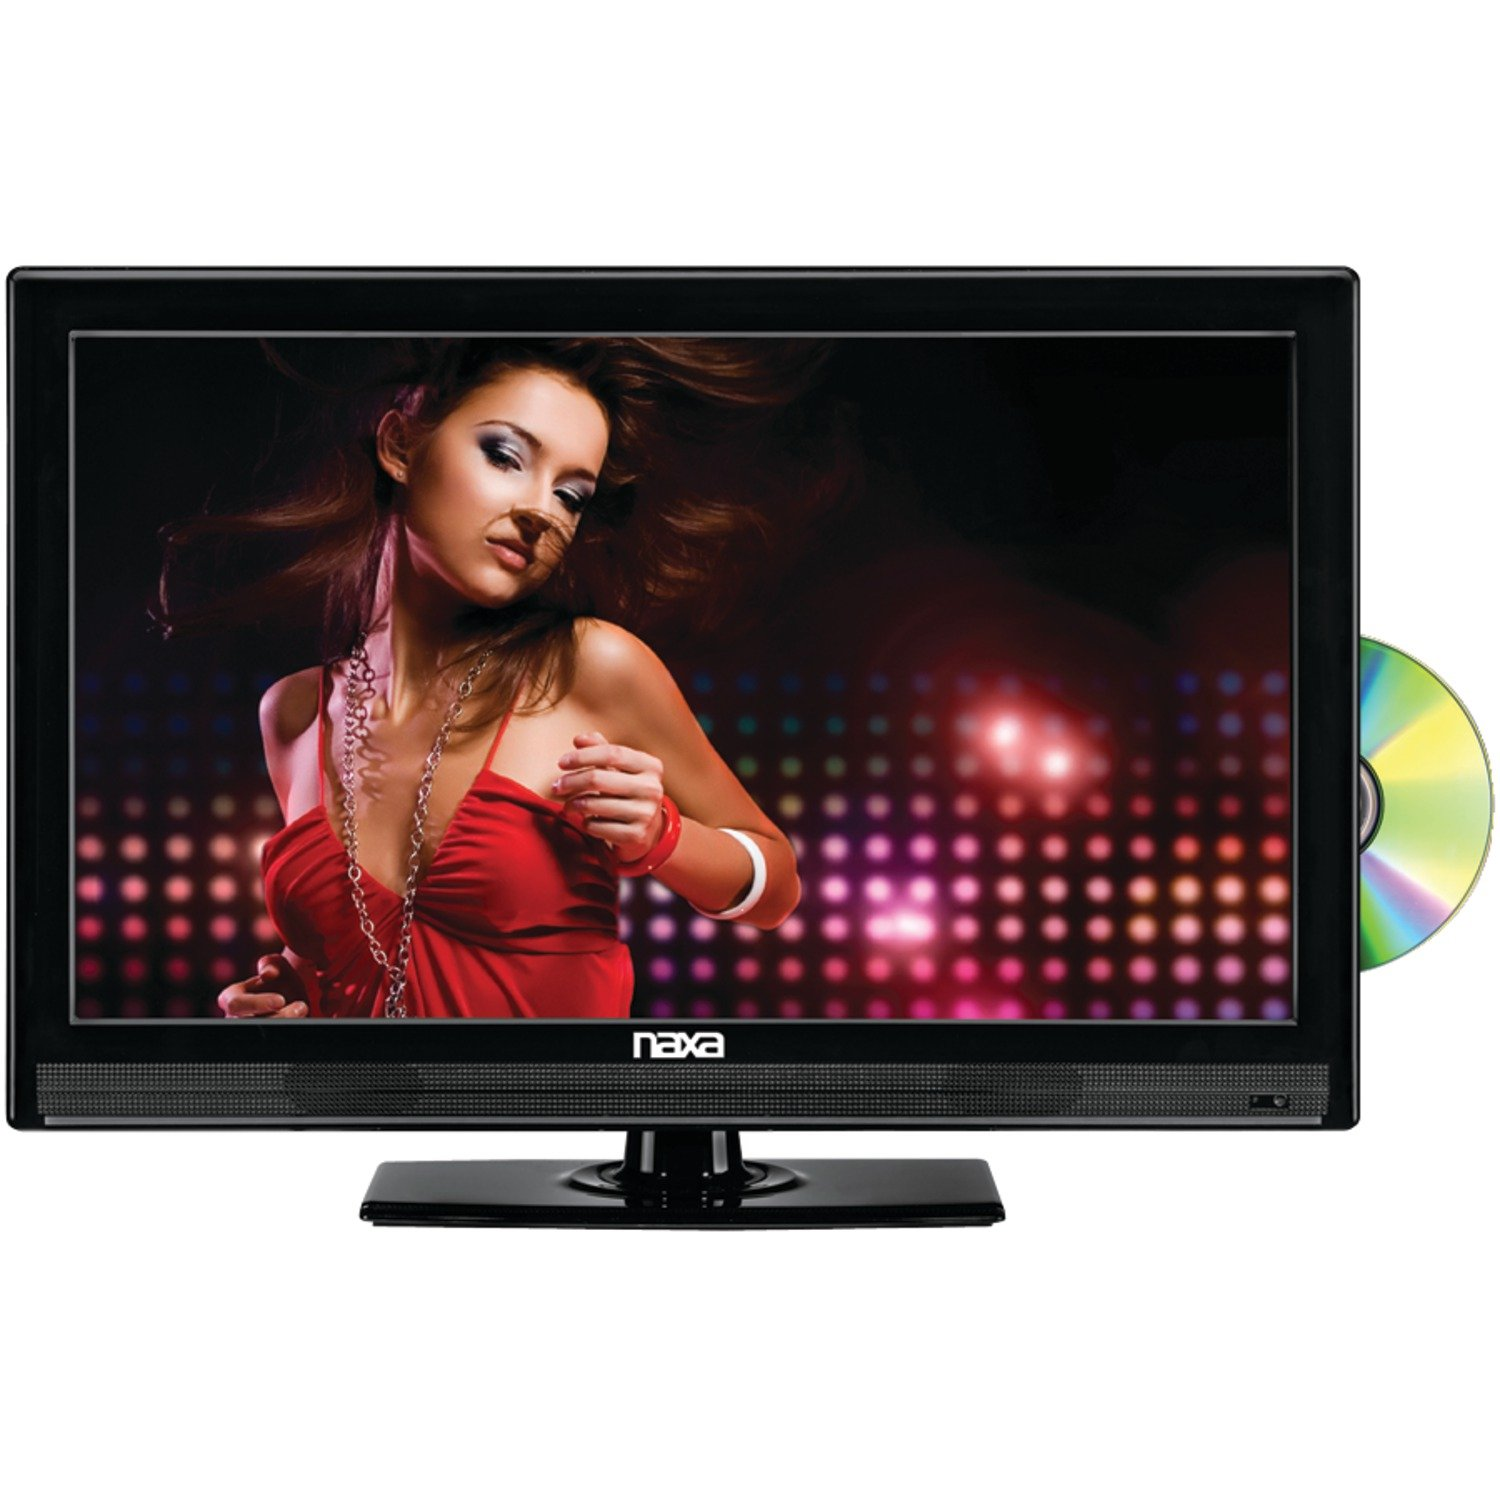 NAXA Electronics NTD-1954 19-Inch LED HDTV with Built-in DVD Player by Naxa Electronics